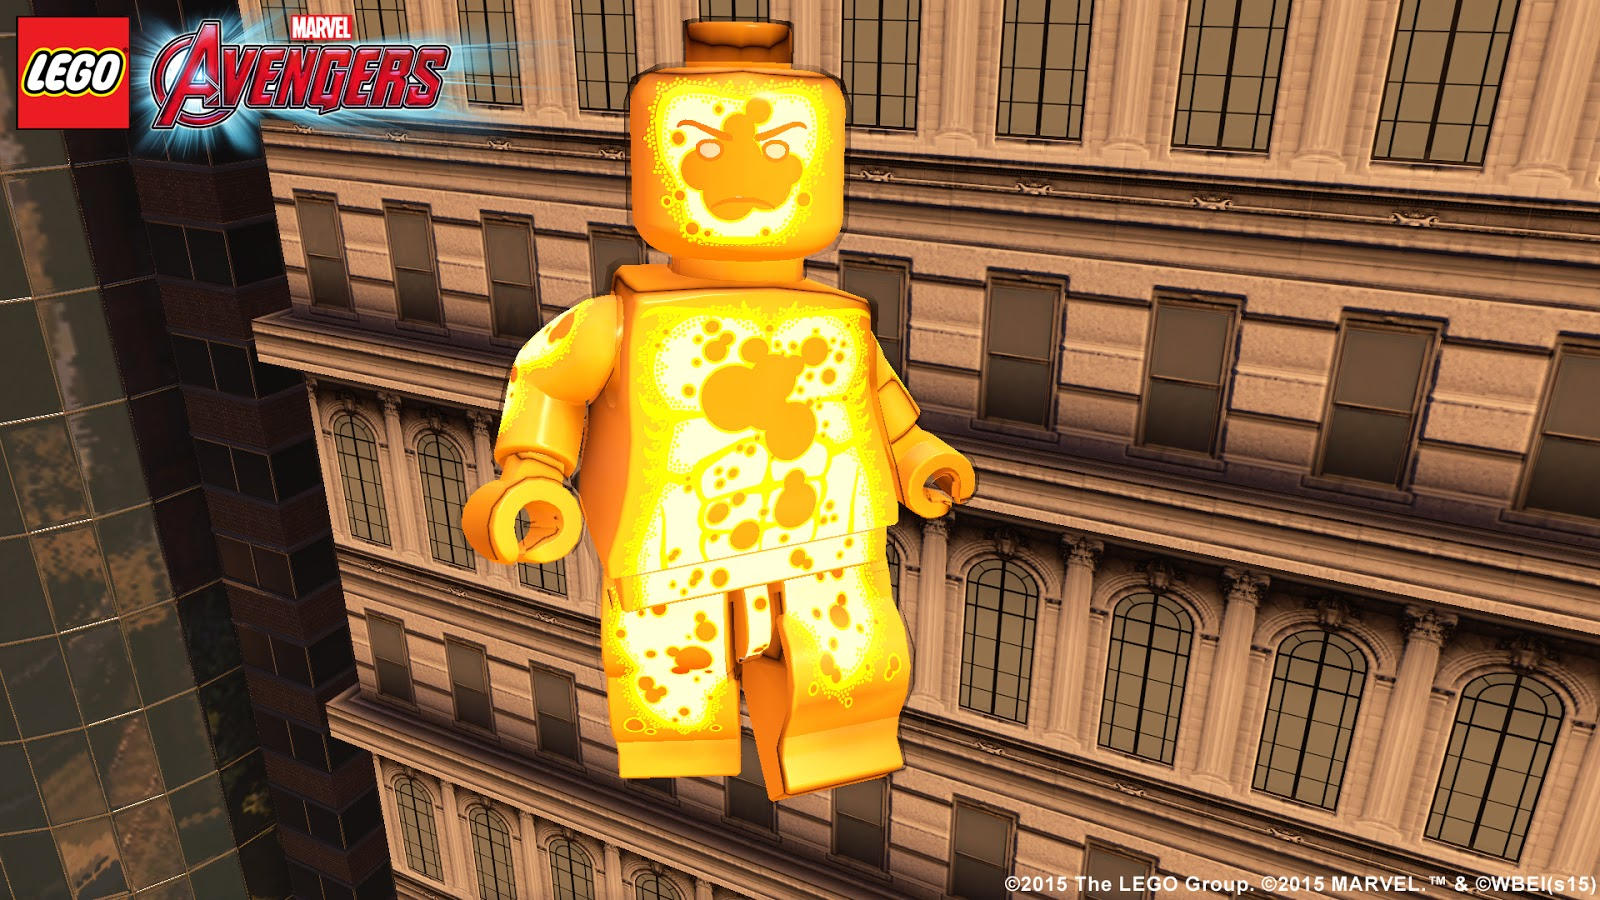 LEGO Marvels Avengers Features Characters And Storylines From The Critically Acclaimed Film Smash Hit Sequel